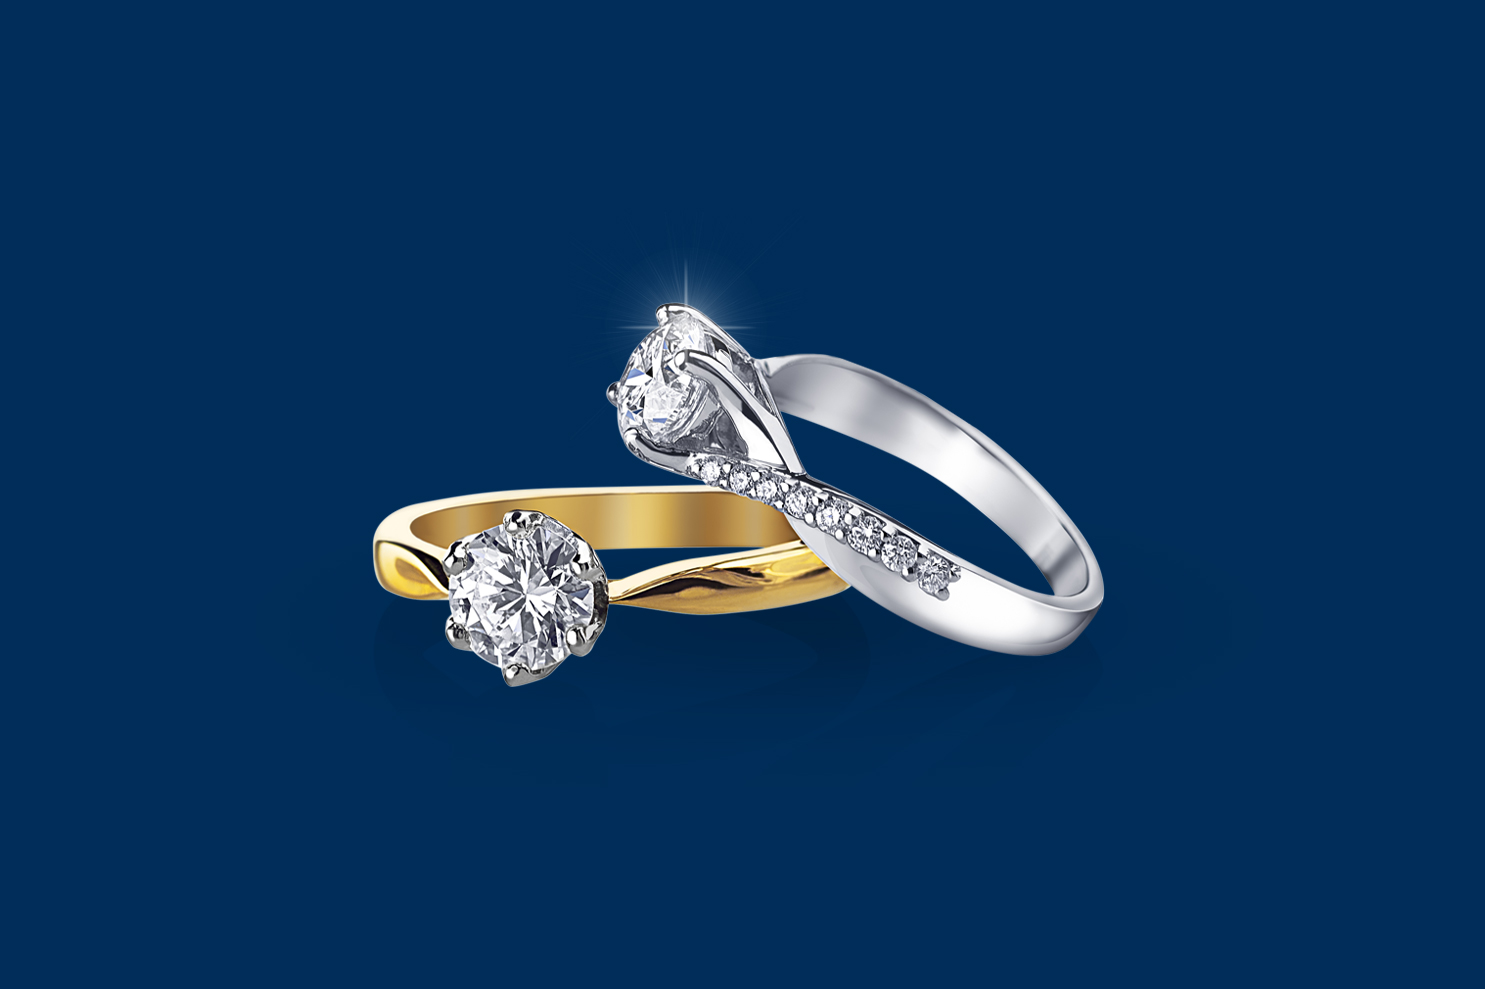 20% increase in diamond jewellery sales